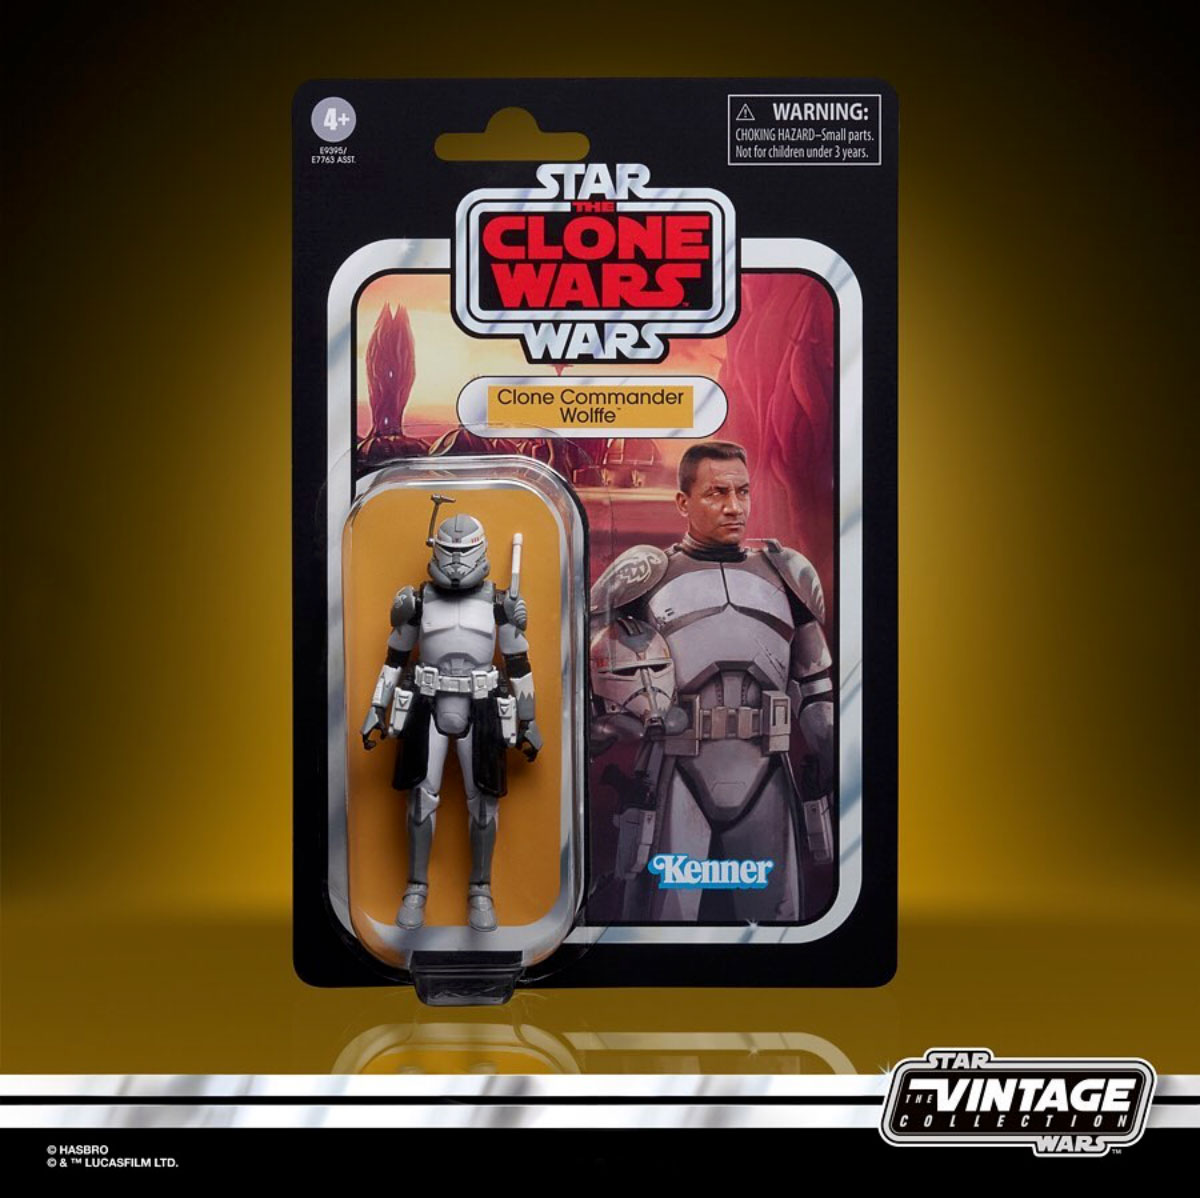 star-wars-the-vintage-collection-clone-commander-wolffe-action-figure-packaging